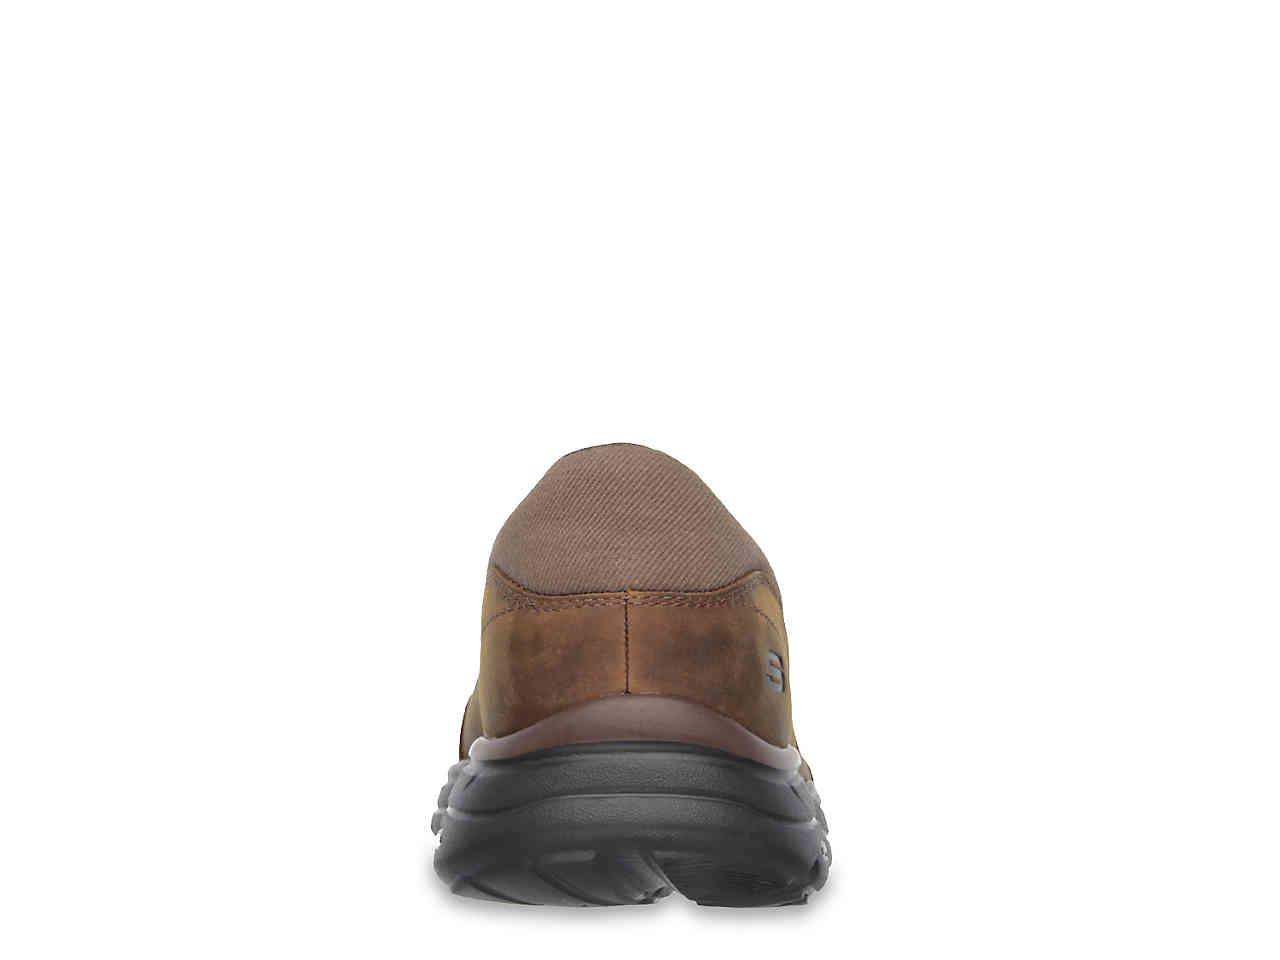 3ae481ed176 Skechers - Brown Relaxed Fit Glides Calculous Slip-on for Men - Lyst. View  fullscreen